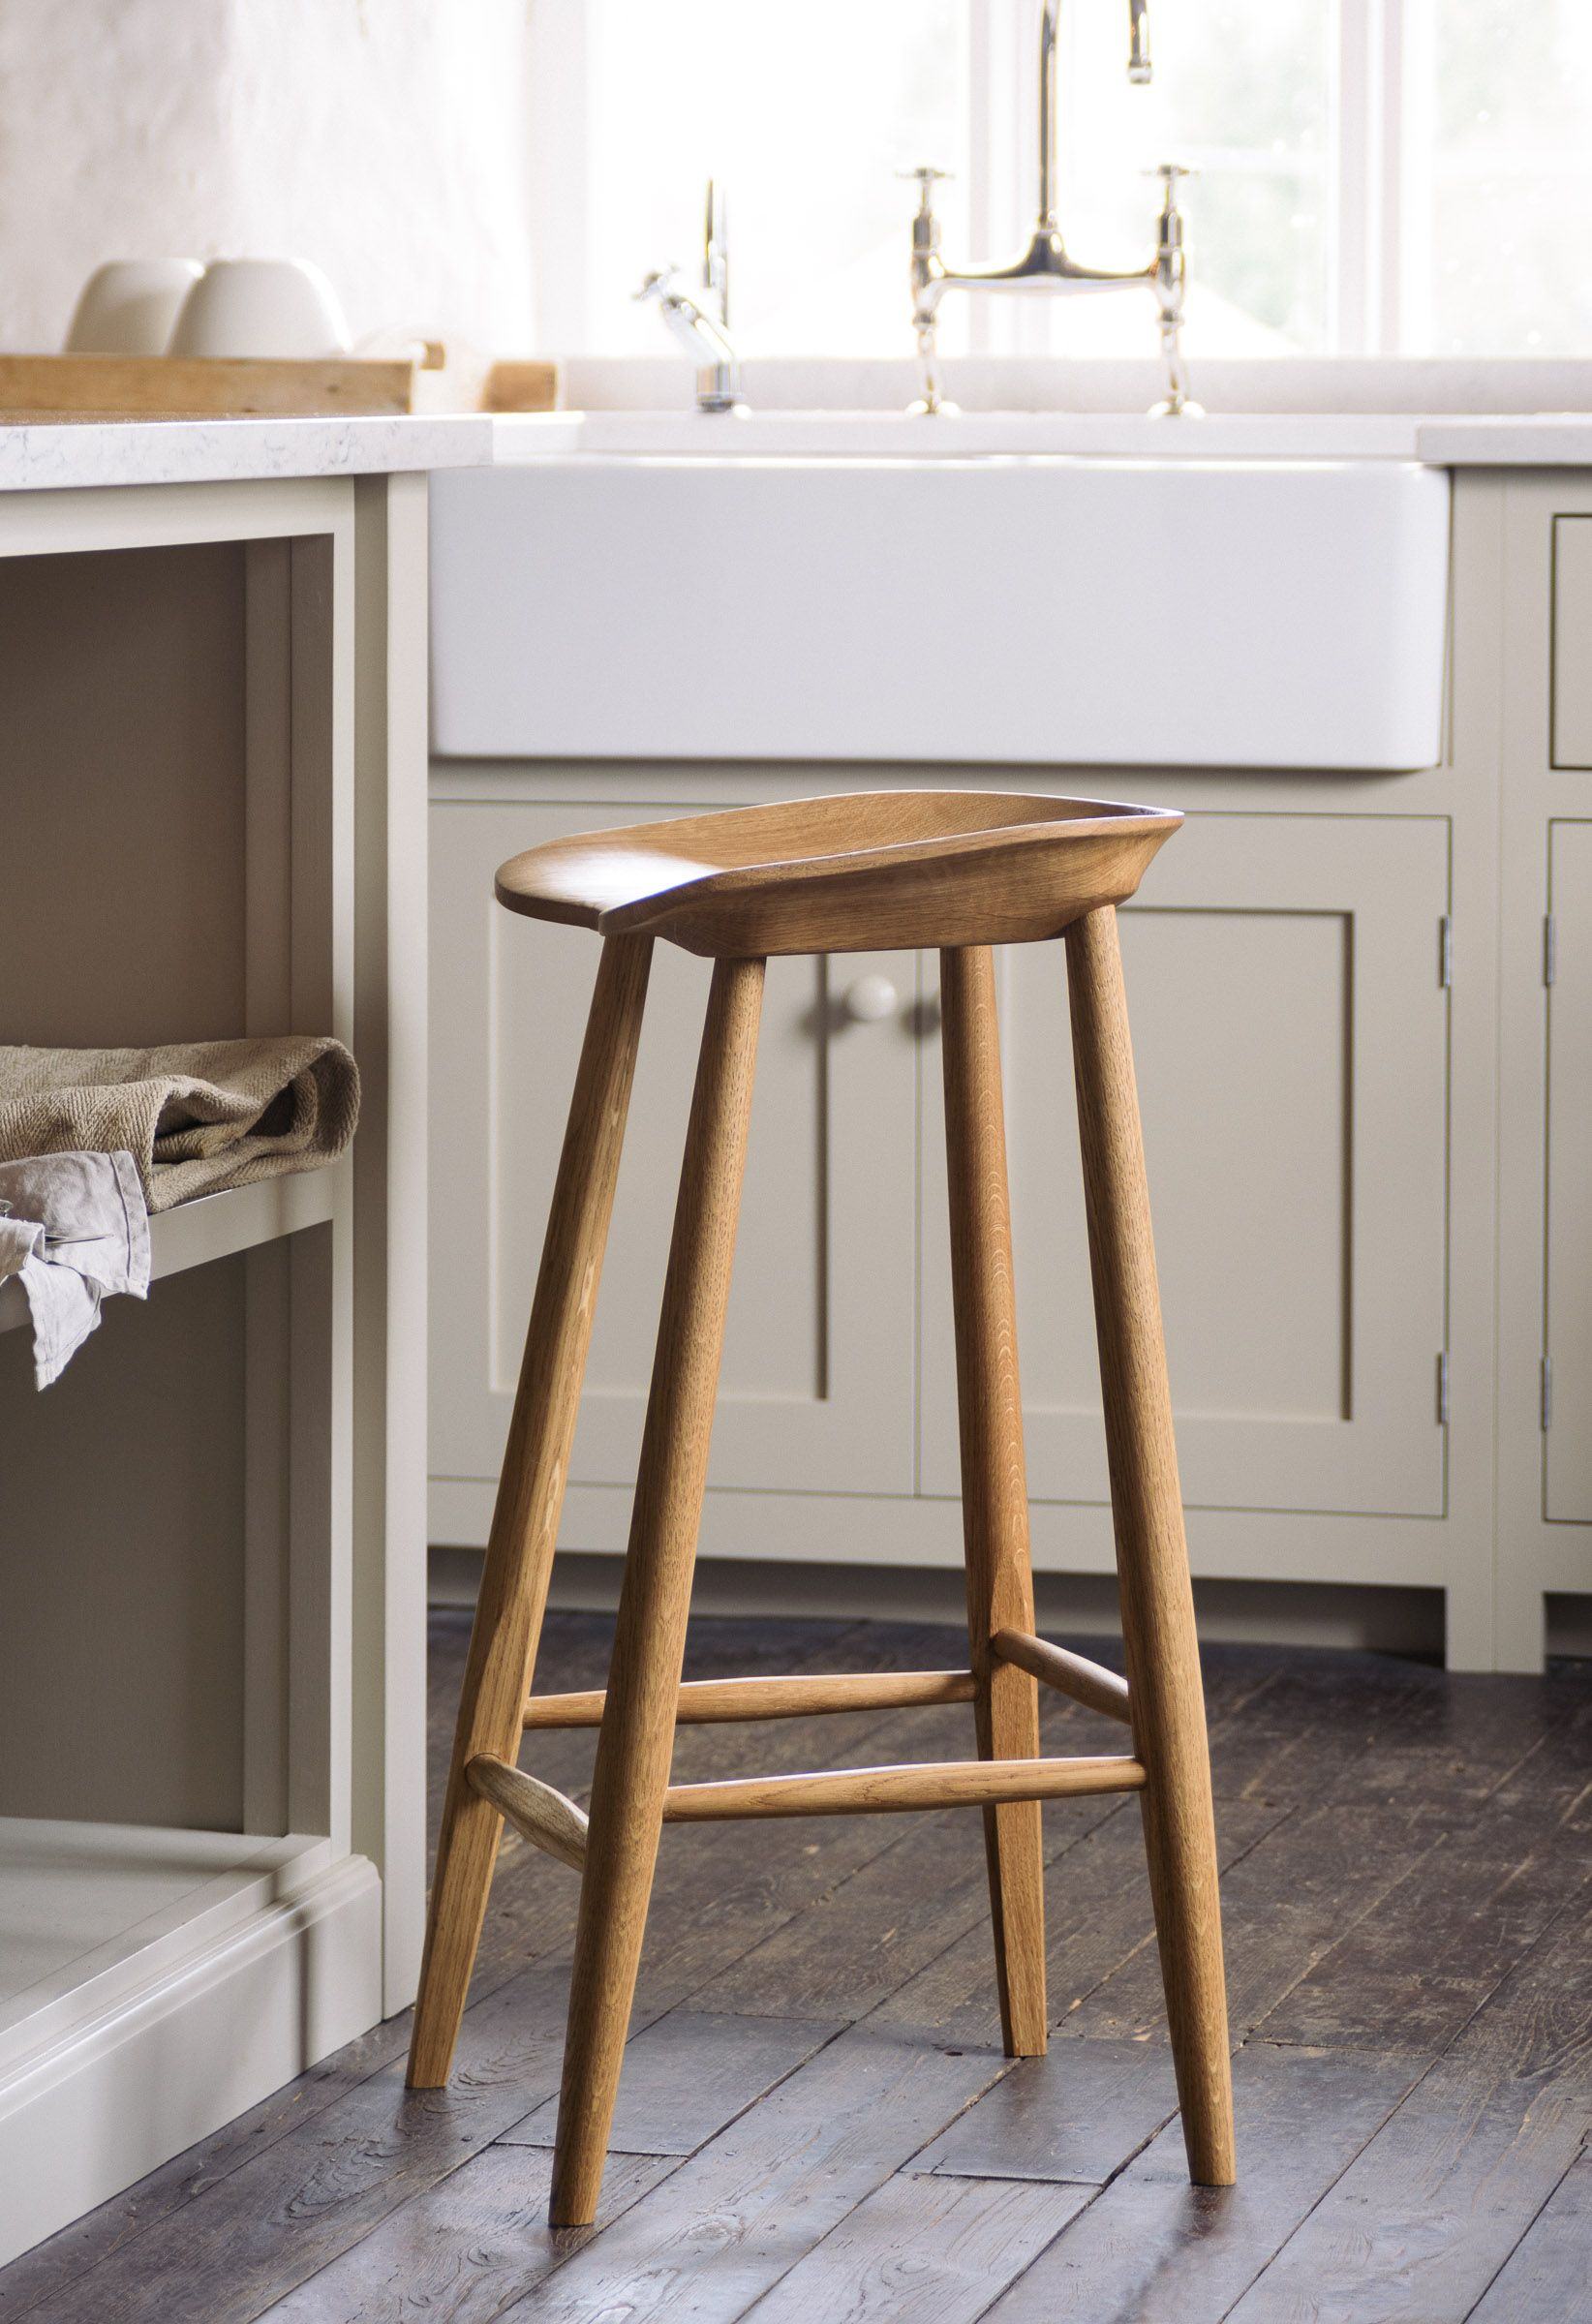 Wooden Kitchen Counter Stools Introducing The Brand New Bum Stool By Devol Home Sweet Wooden